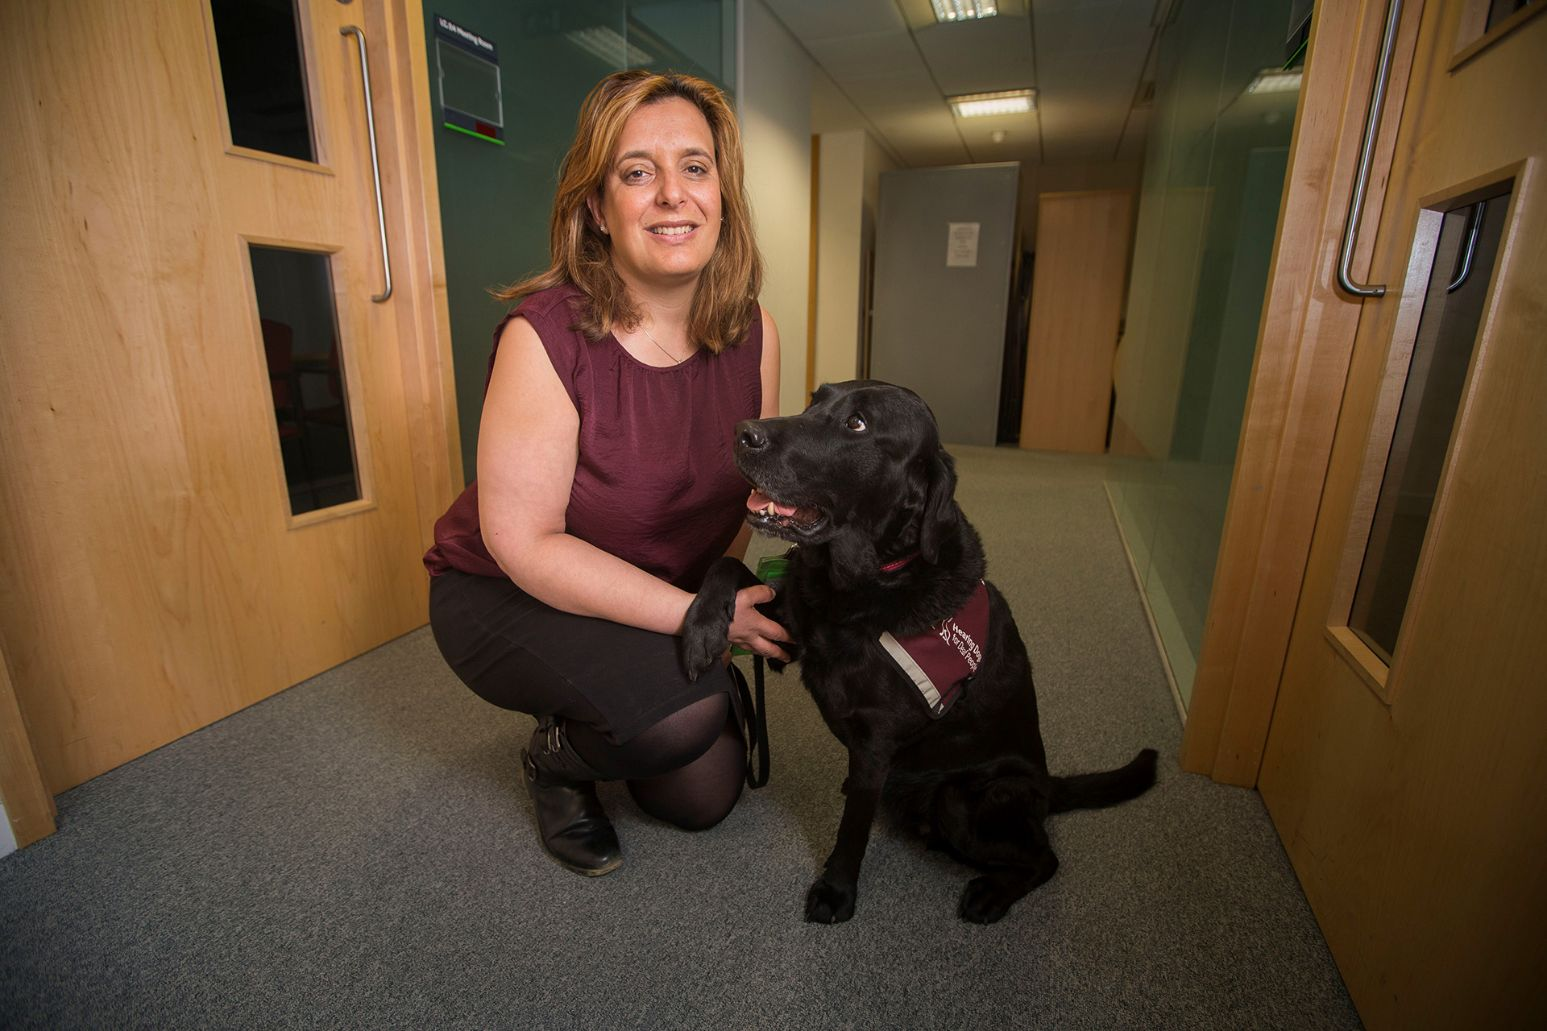 A DWP employee with their hearing dog.